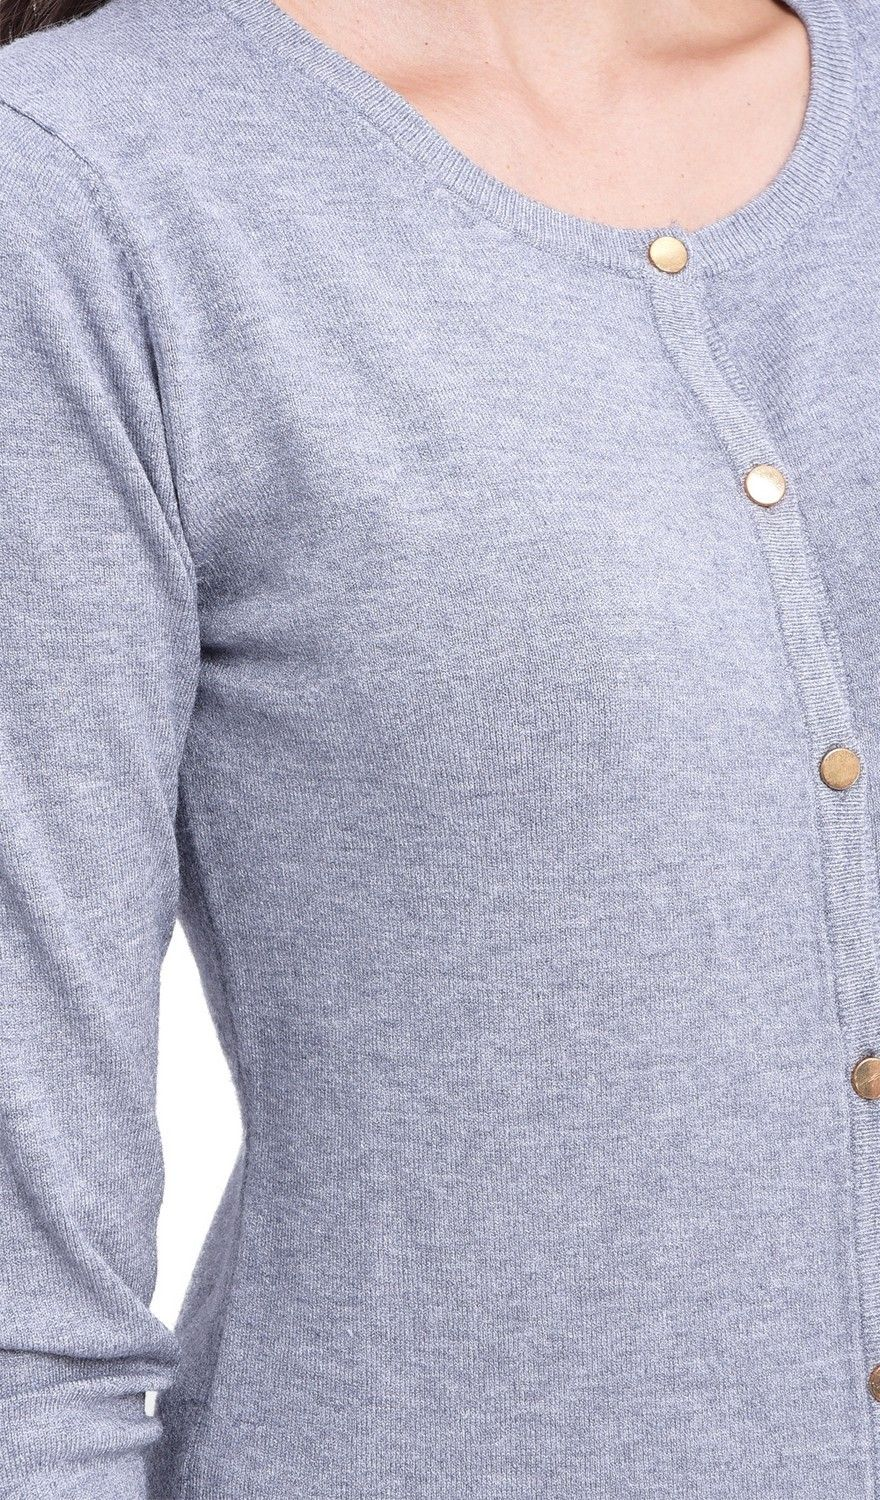 Assuili Round Neck Cardigan with Gold Buttons in Grey